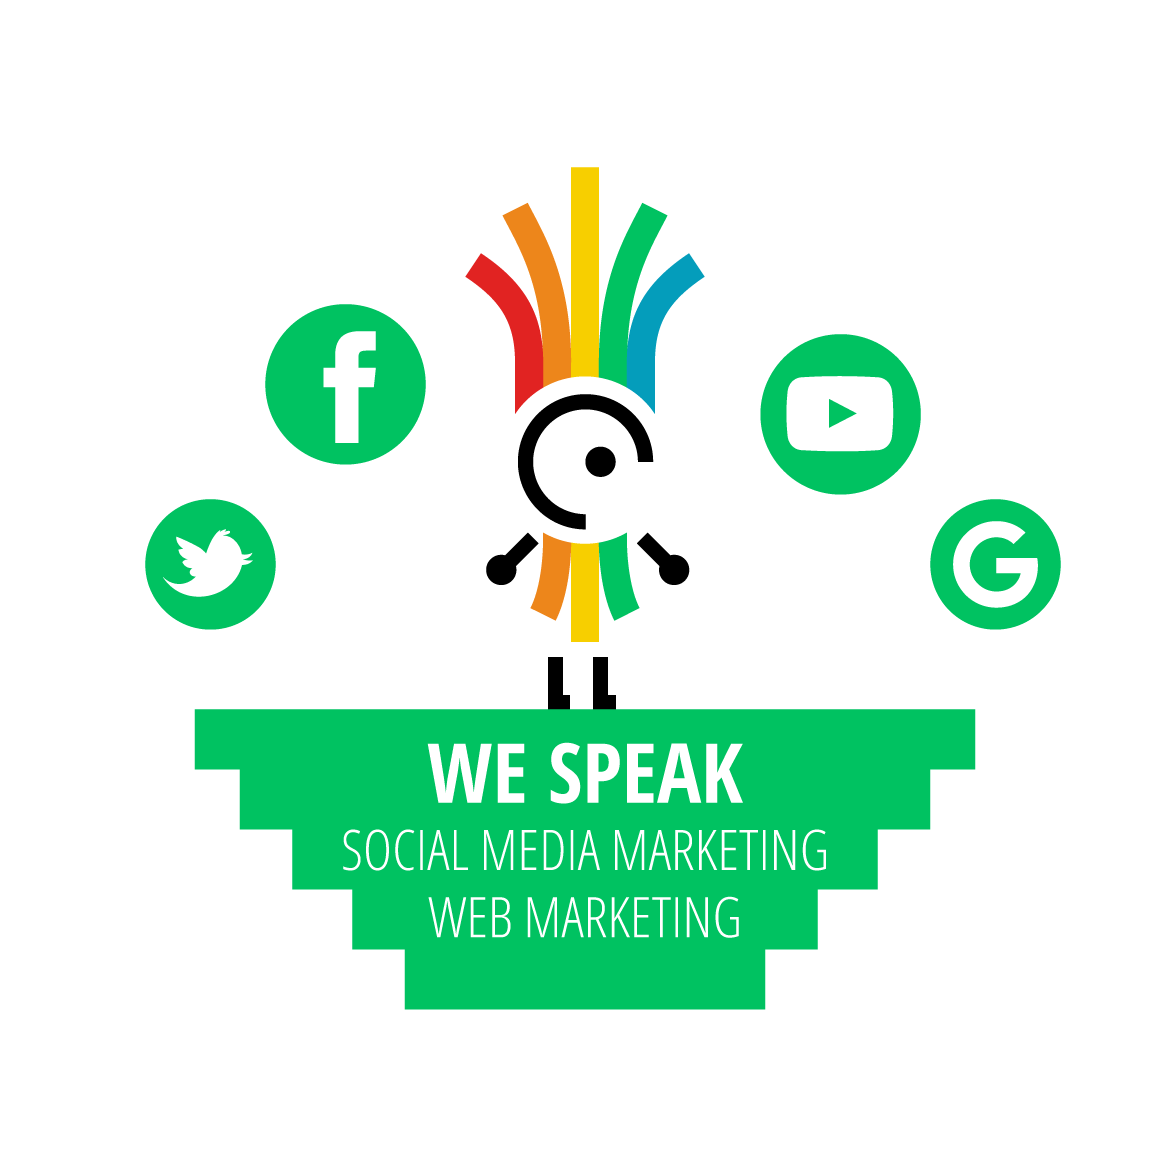 We speak – Social Media Marketing